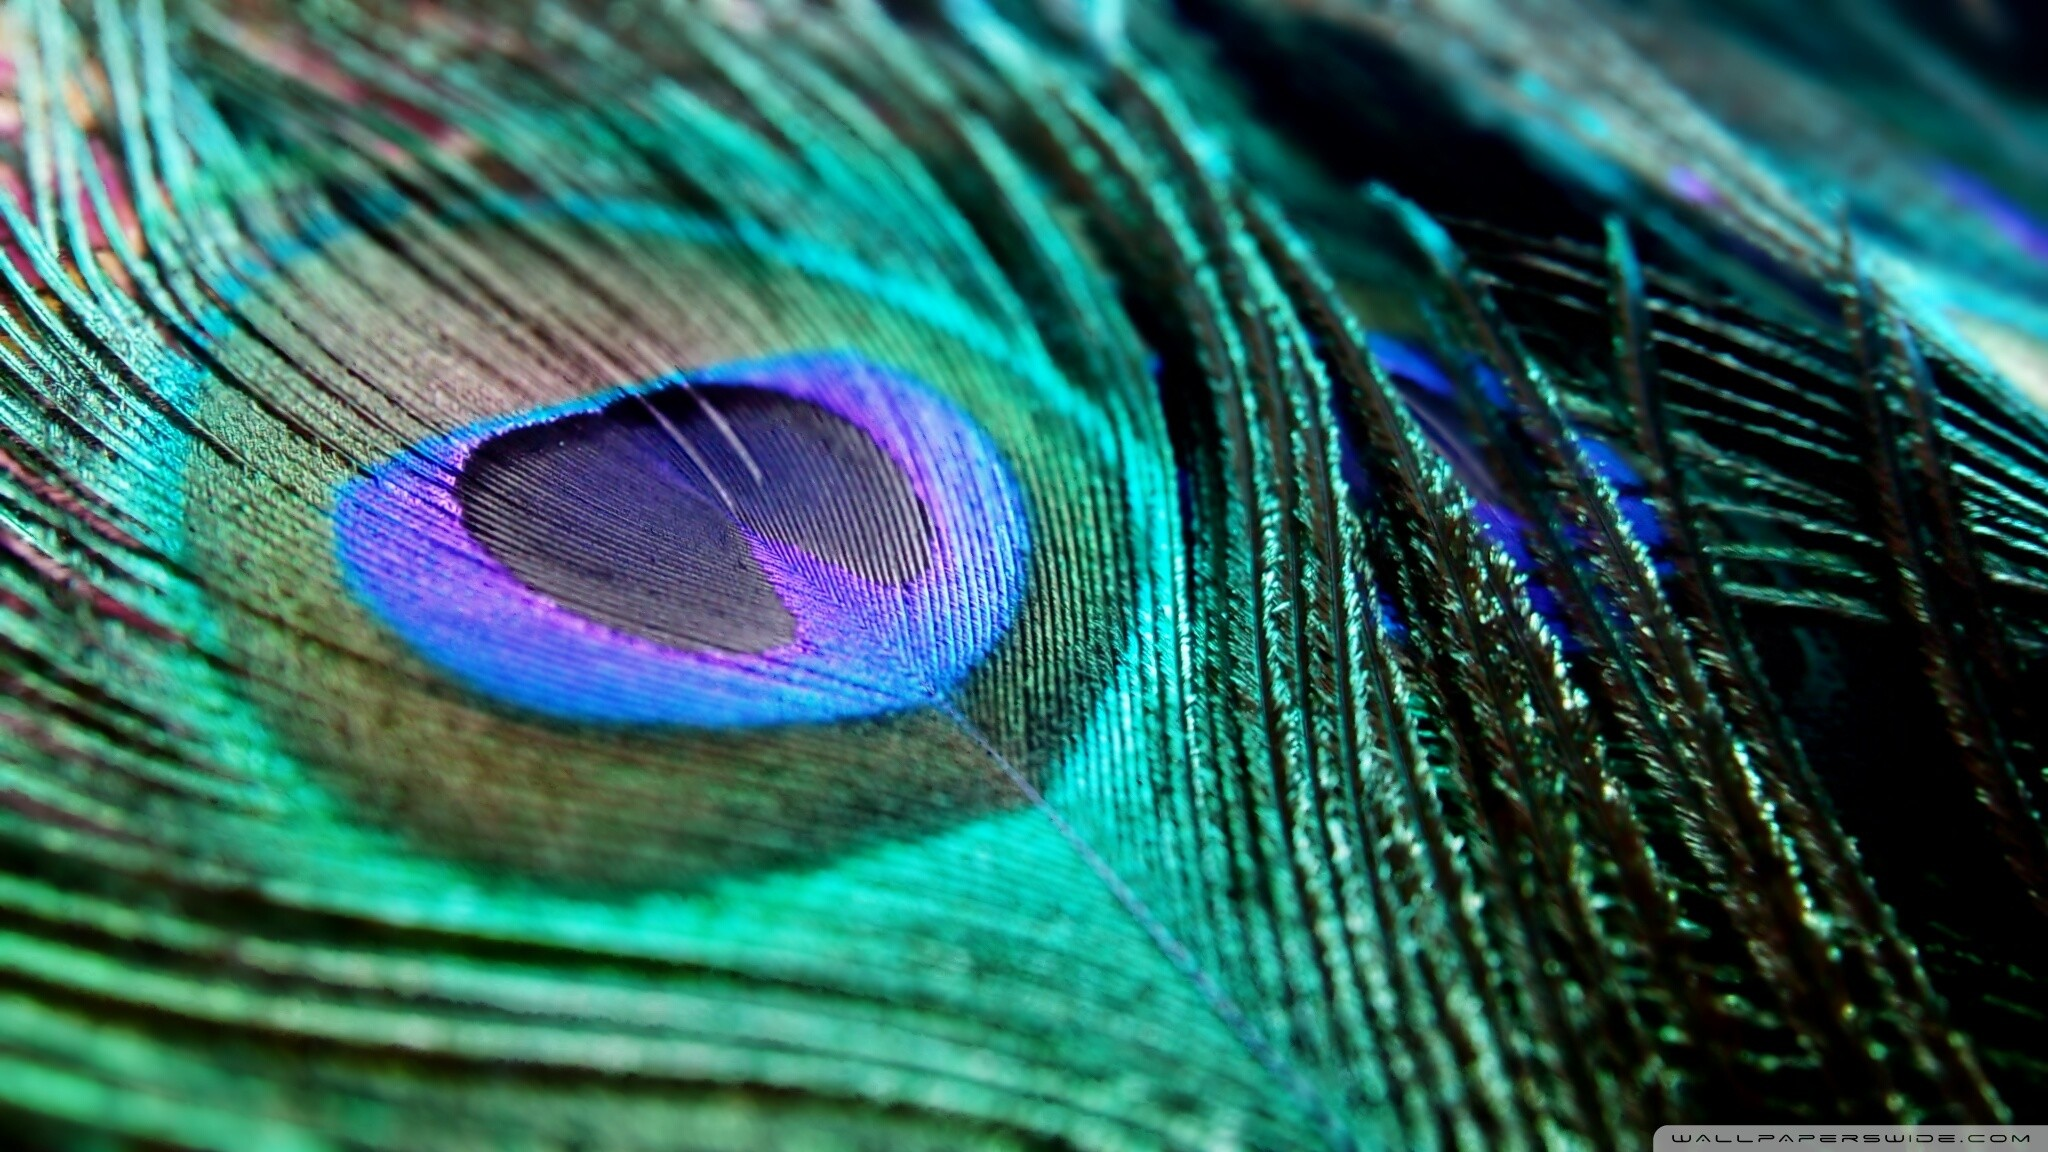 51 Peacock Feather Wallpapers on WallpaperPlay 2048x1152